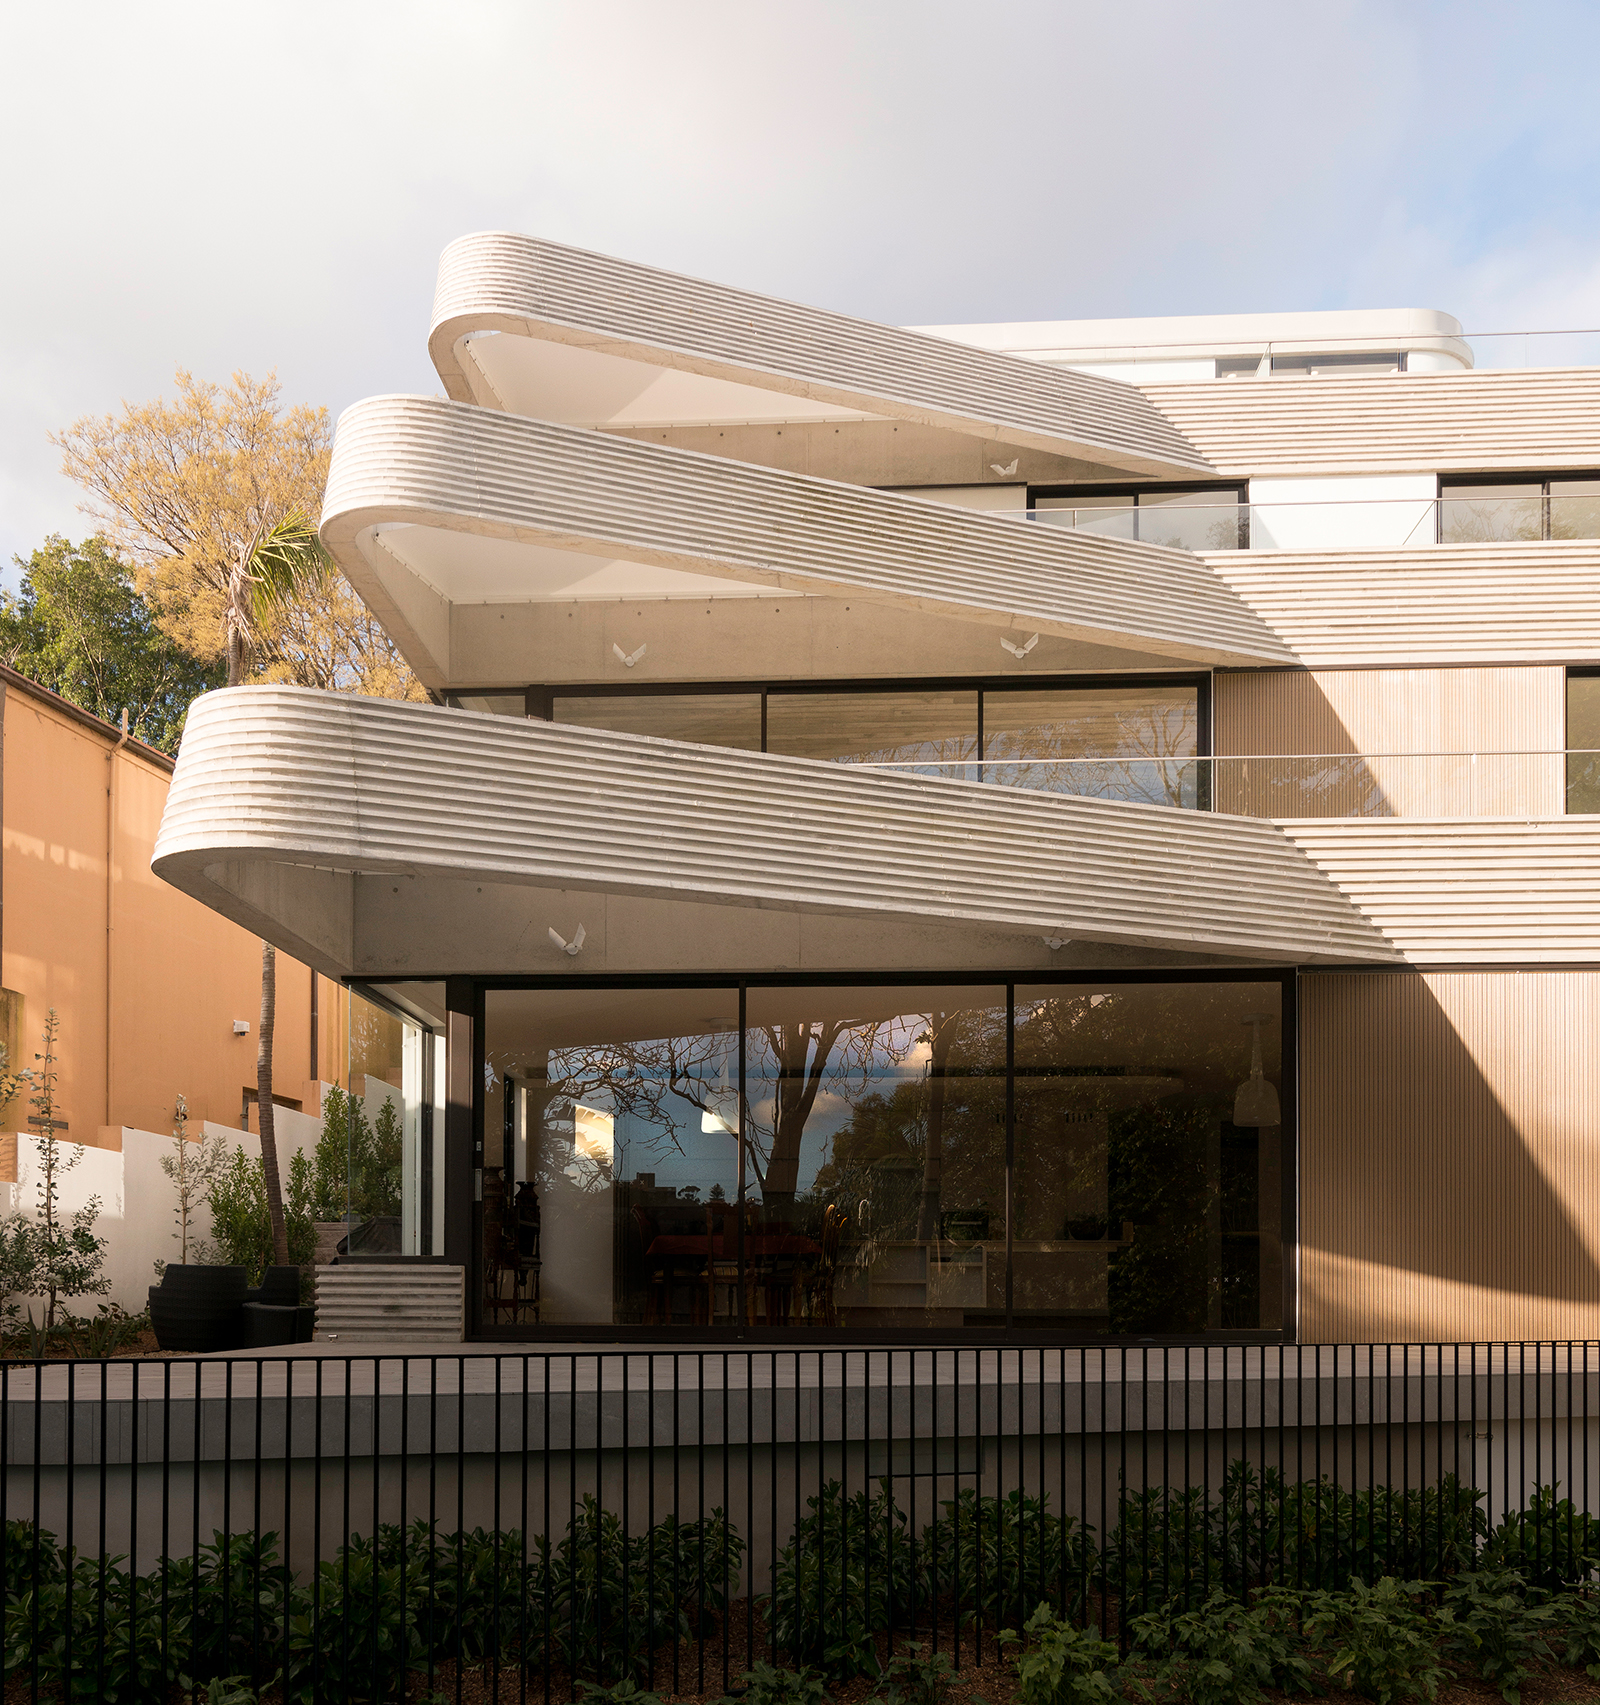 Gallery Of The Triplex Apartments By Luigi Rosselli Architects Local Australian Design And Interiors Bellevue Hill, Nsw Image 8